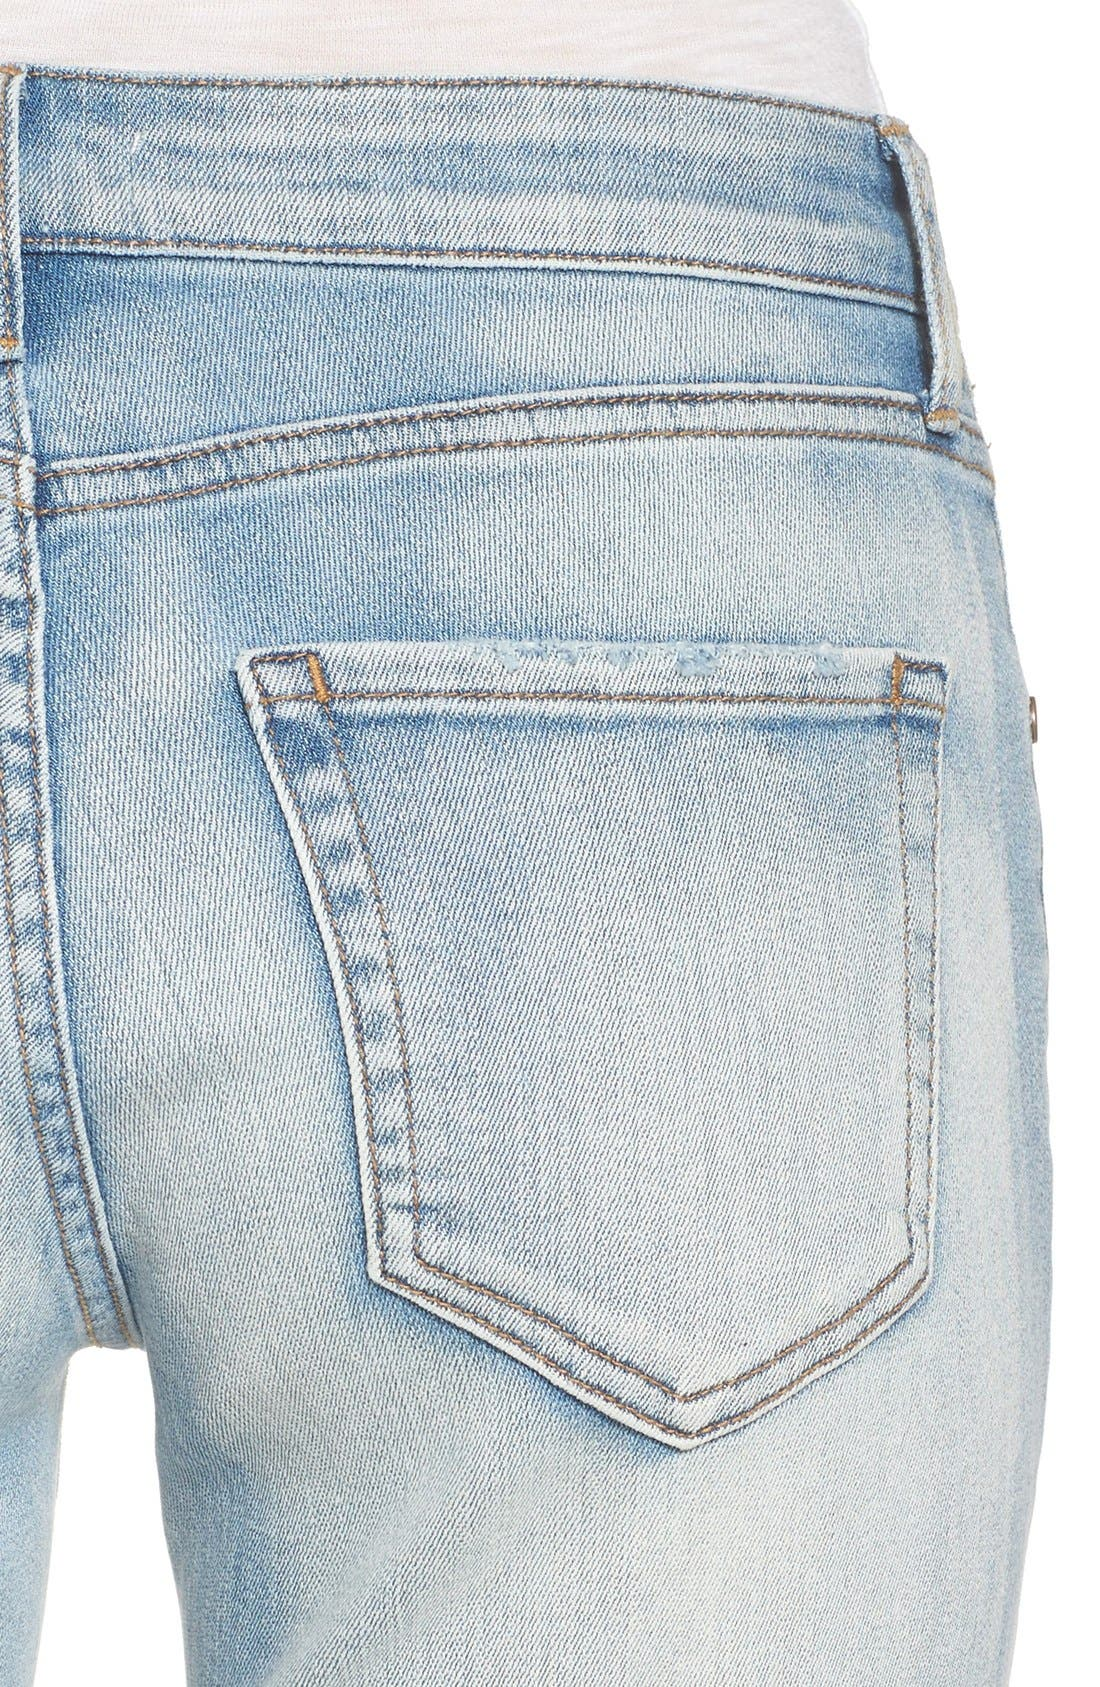 Ripped Skinny Boyfriend Jeans,                             Alternate thumbnail 4, color,                             Mission Bay